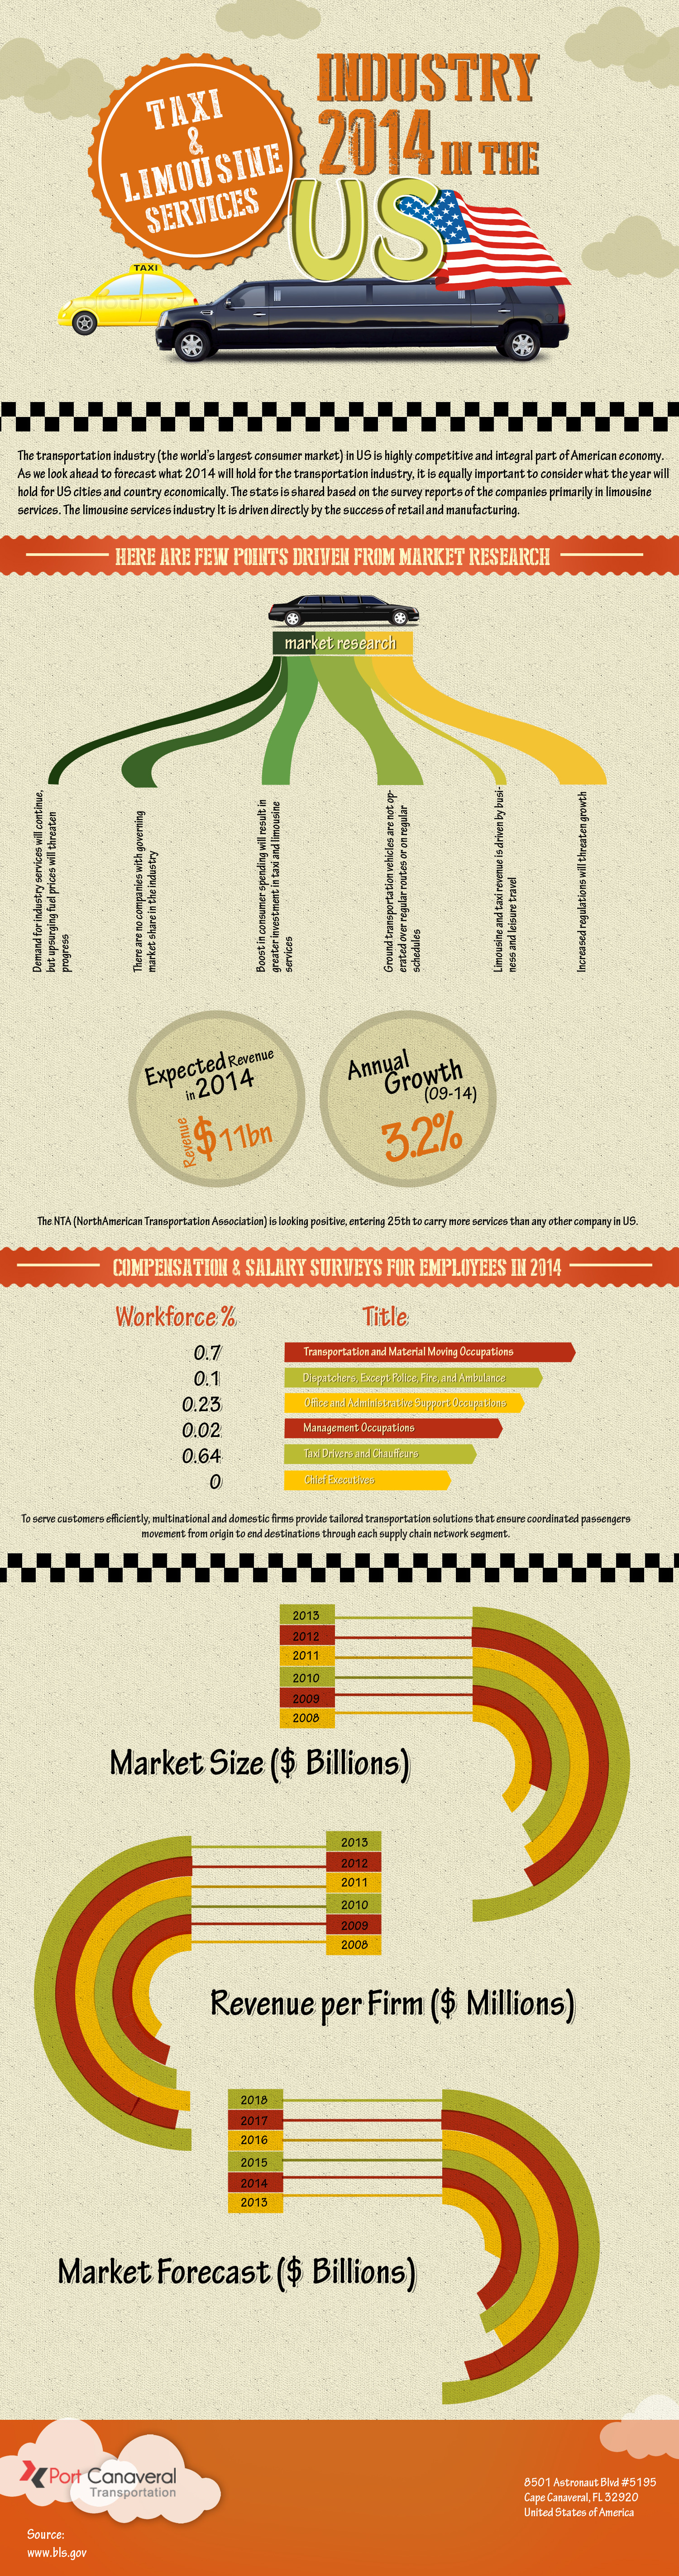 Taxi & Limousine Services Industry 2014 in the US Infographic